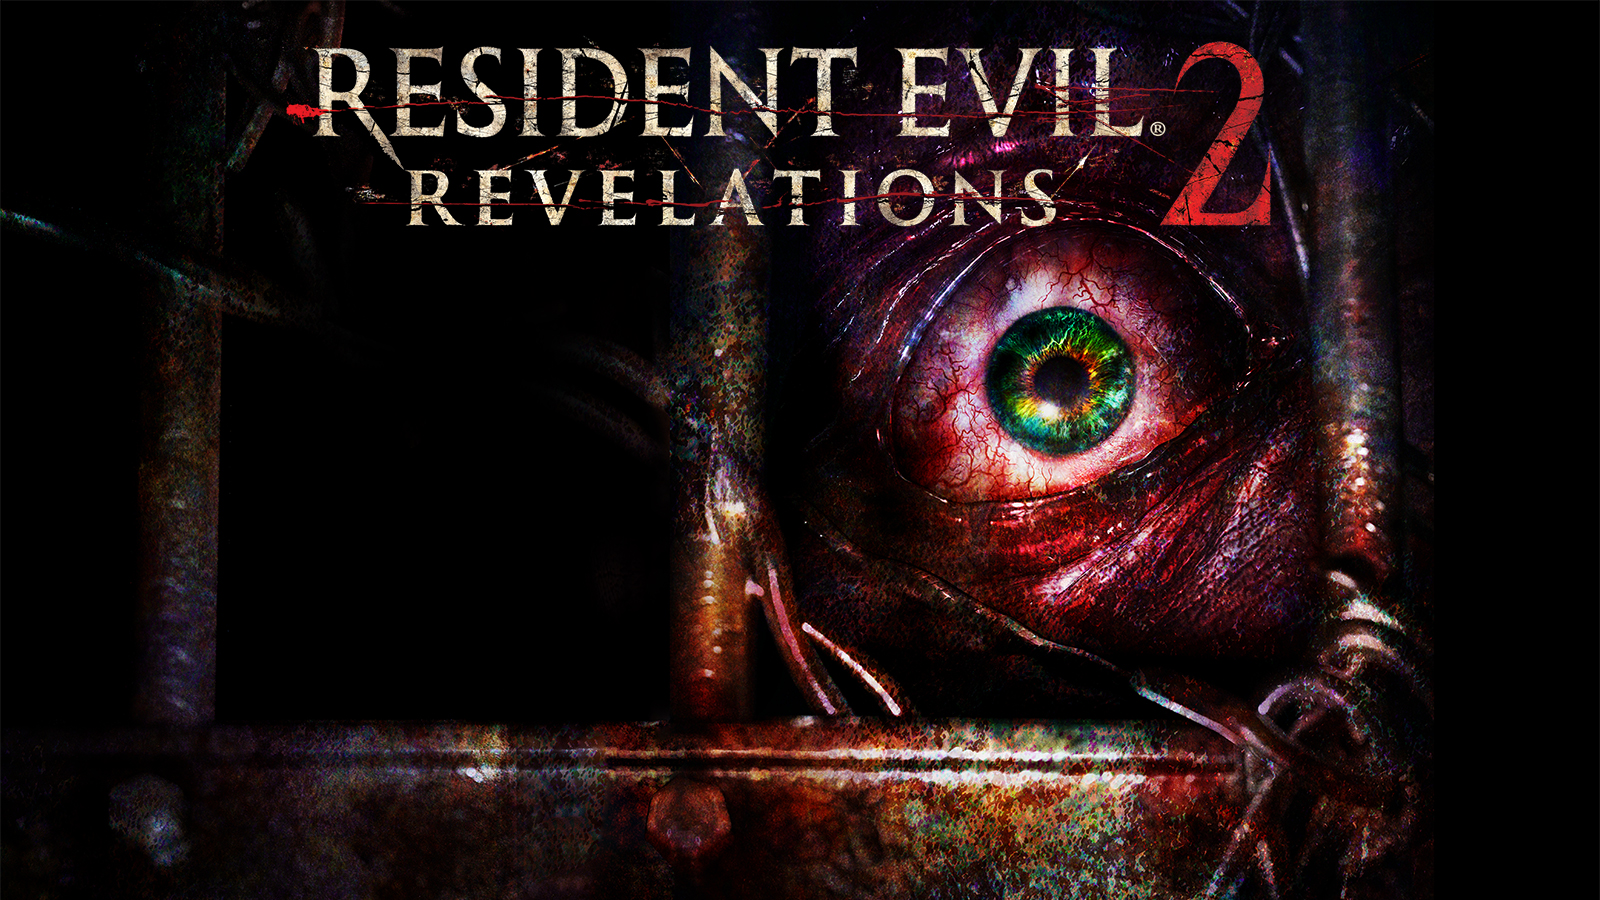 Resident Evil: Revelations 2 telecharger gratuit de PC et Torrent